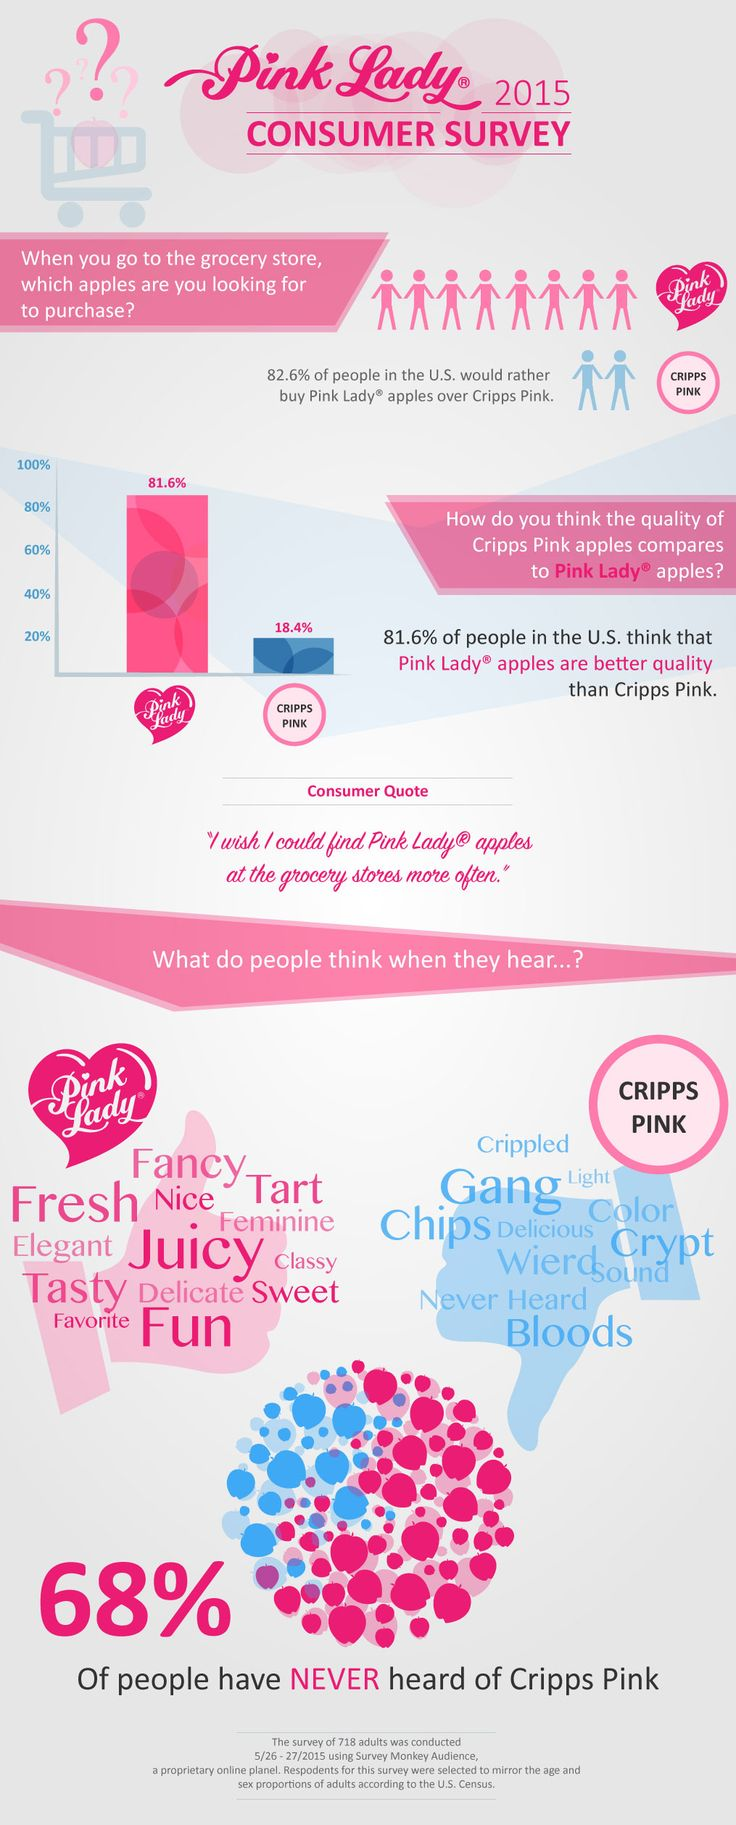 Consumer Survey Infographic Shows Fondness For Pink Lady® Brand! | Pink Lady America